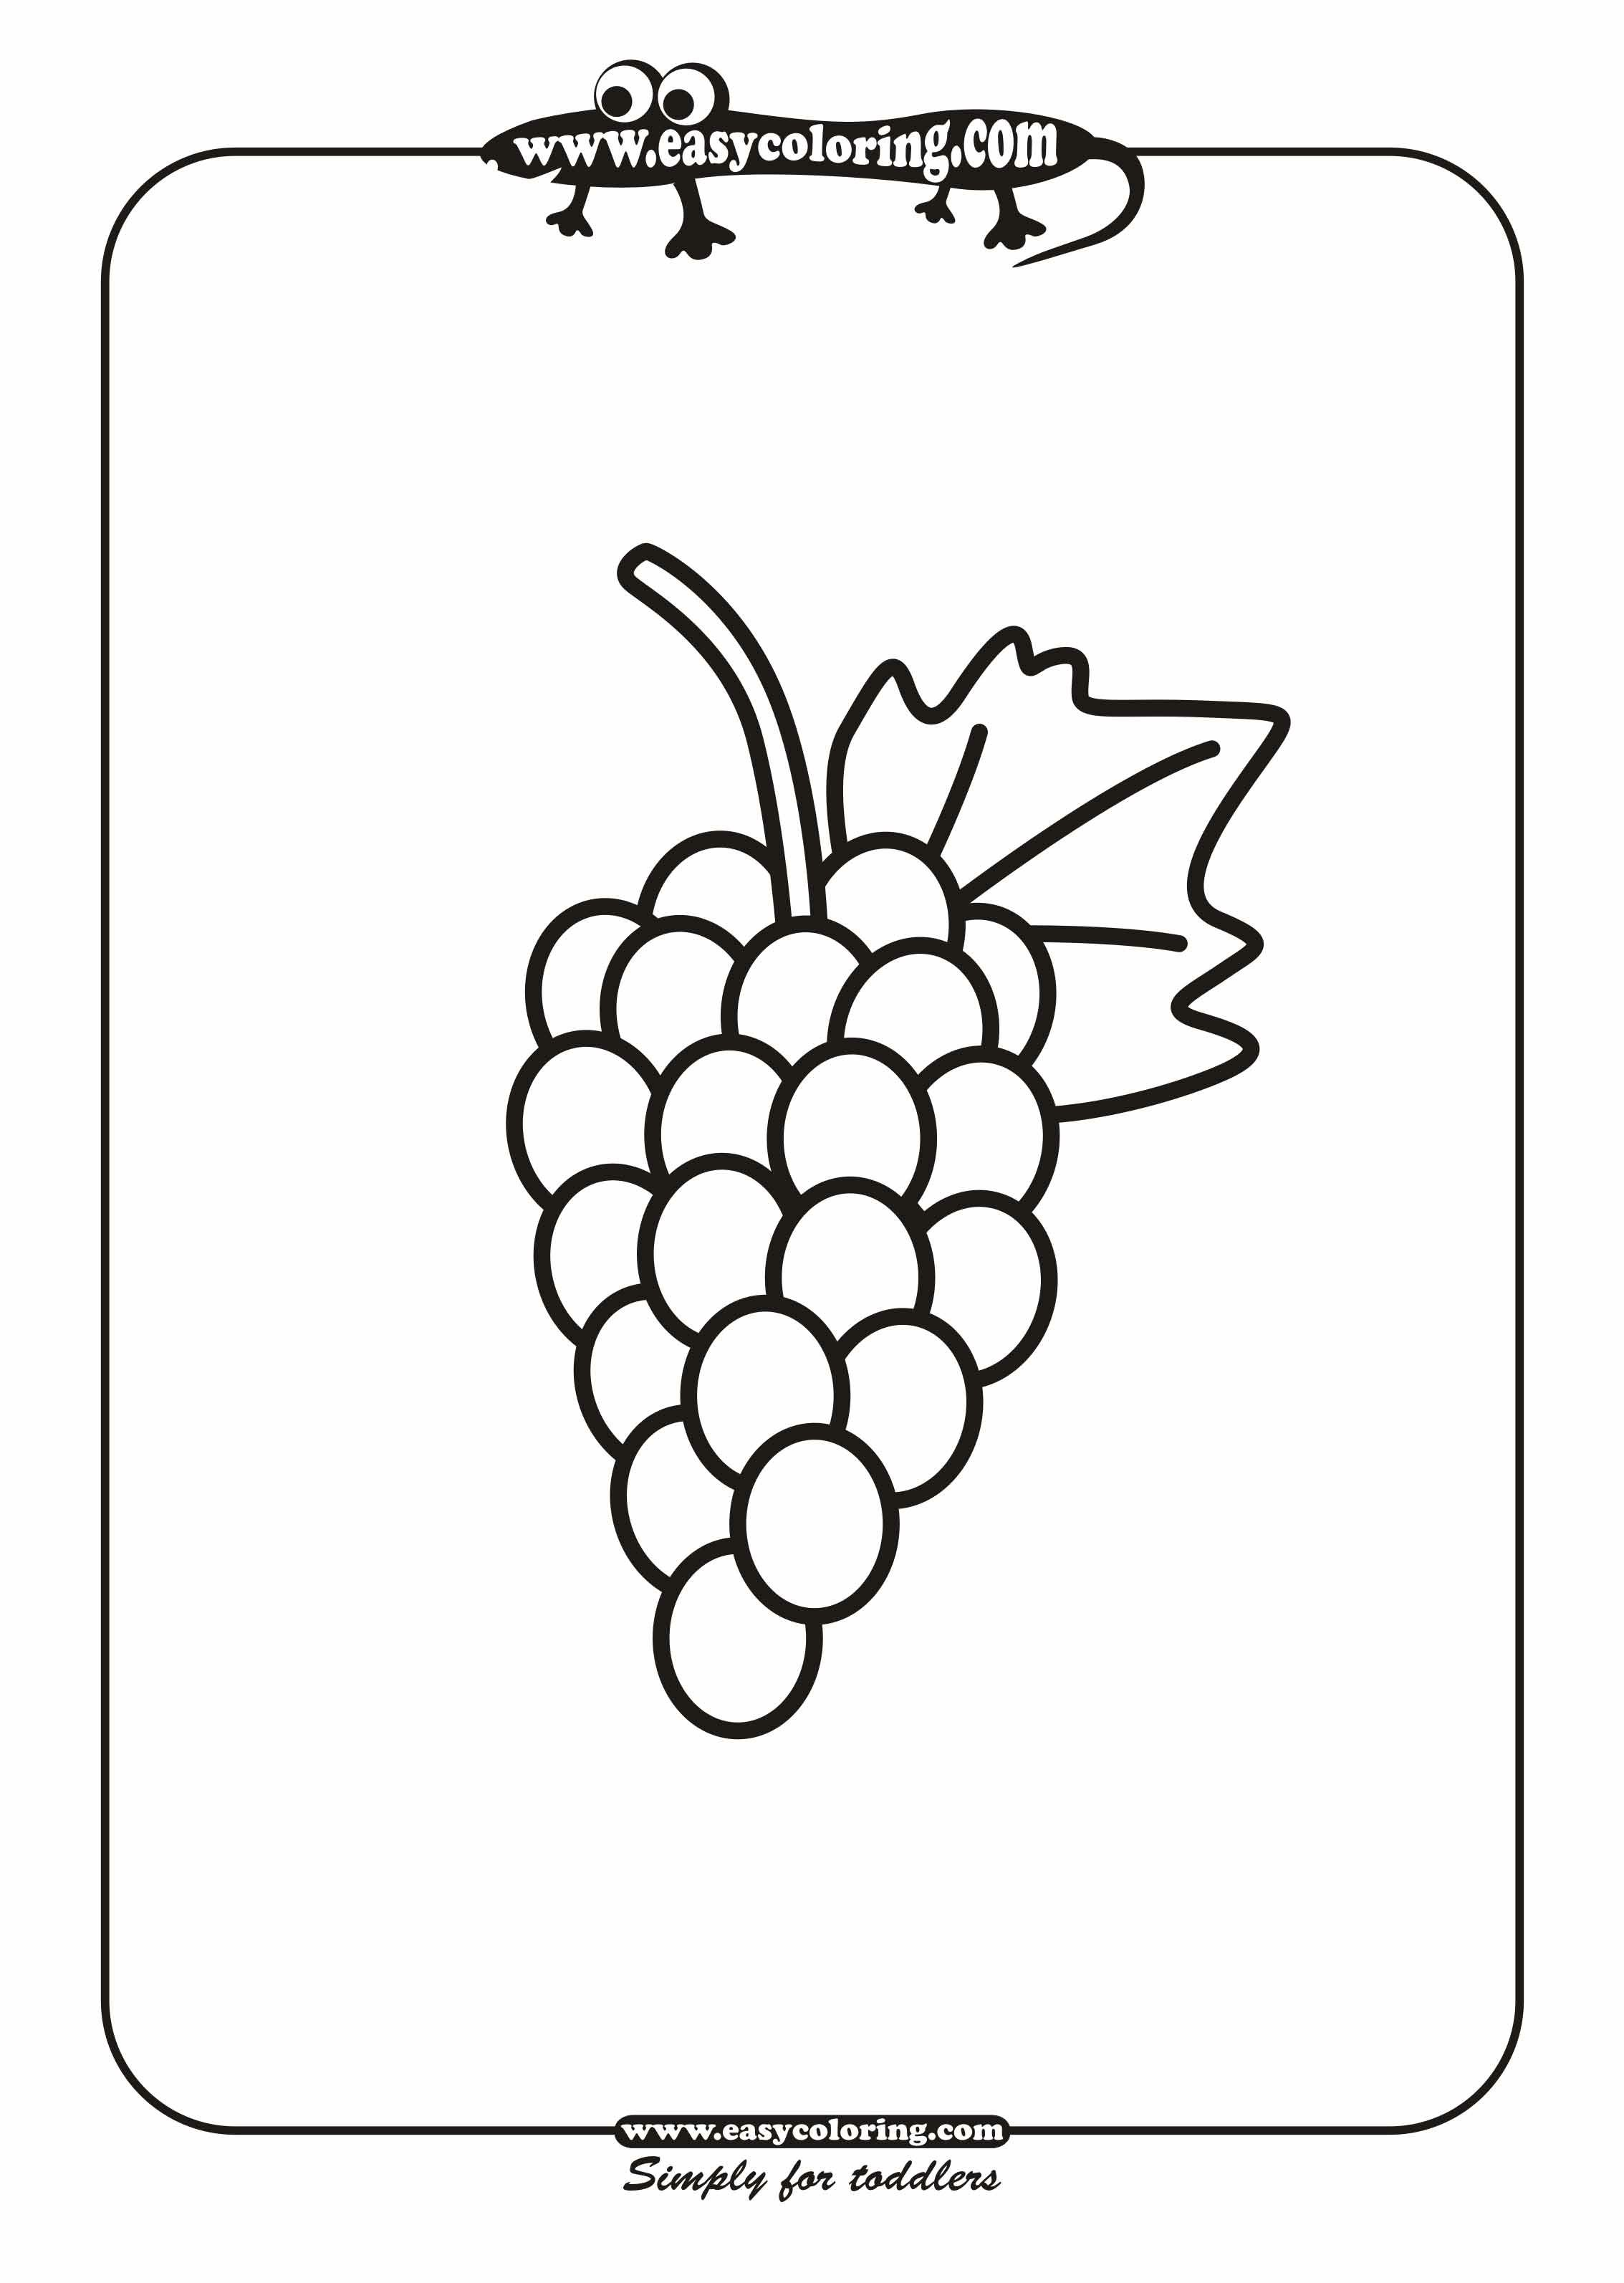 grapes coloring pages for kids - photo#27